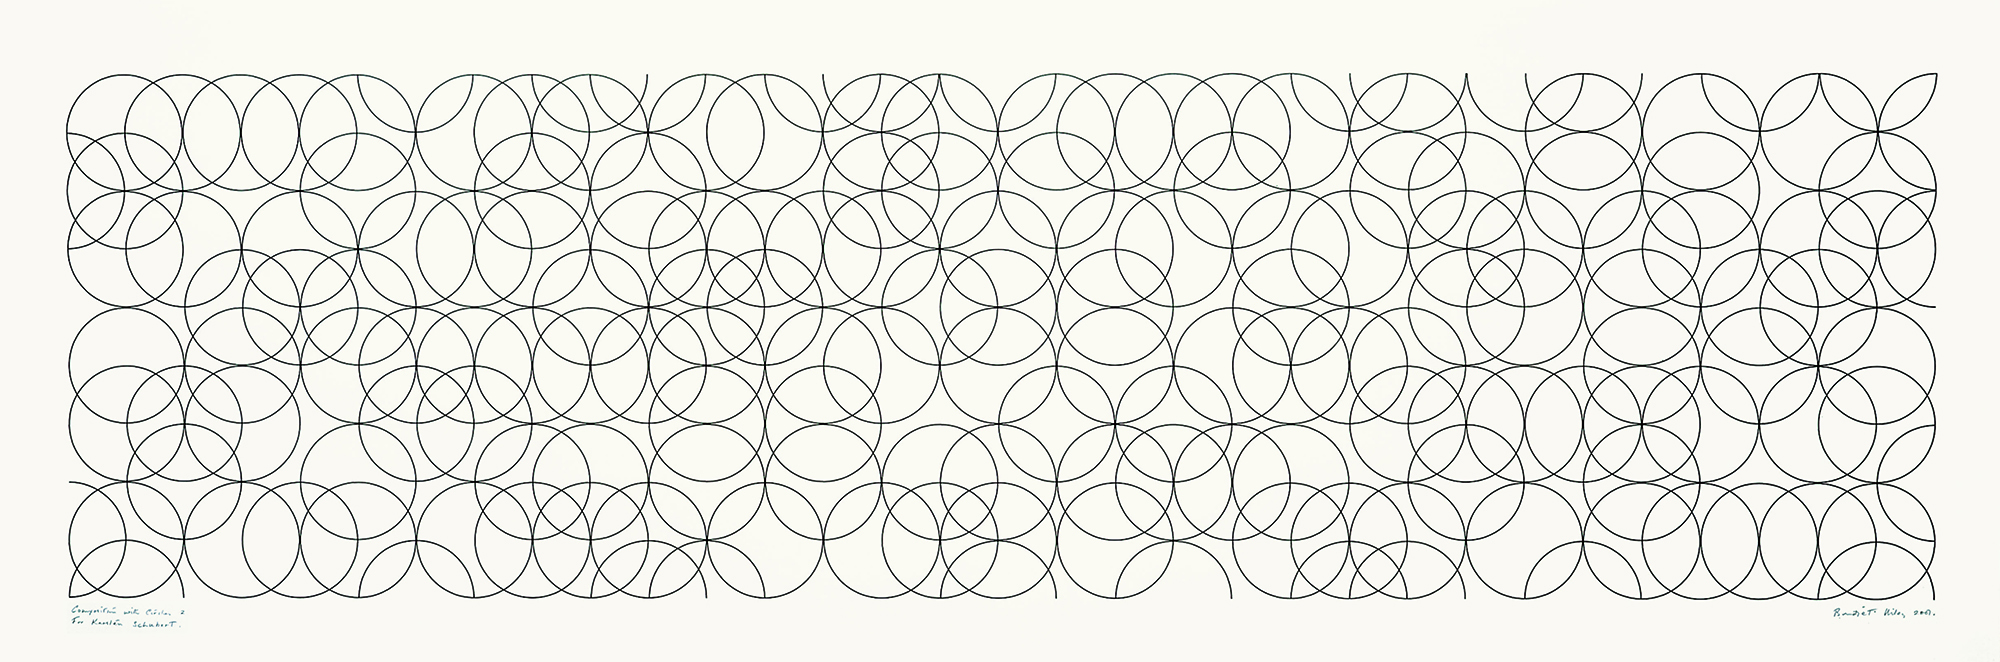 Composition with Circles 2 2001.jpg